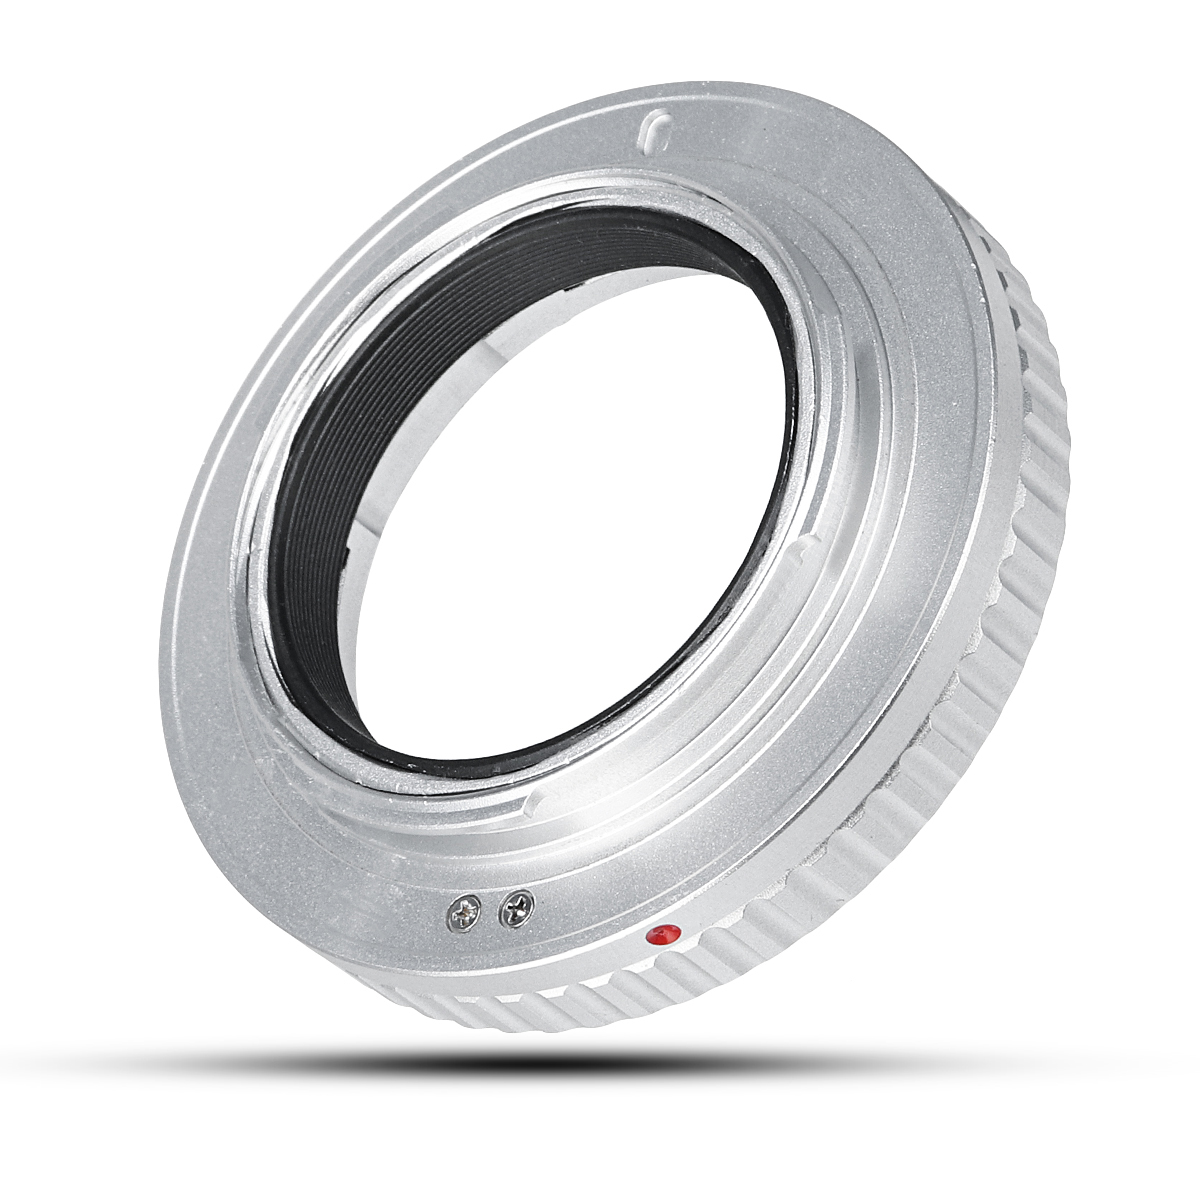 LM-NEX Close Focus Adapter камера Кольцо для Leica M Объектив Для Sony E Mount Macro